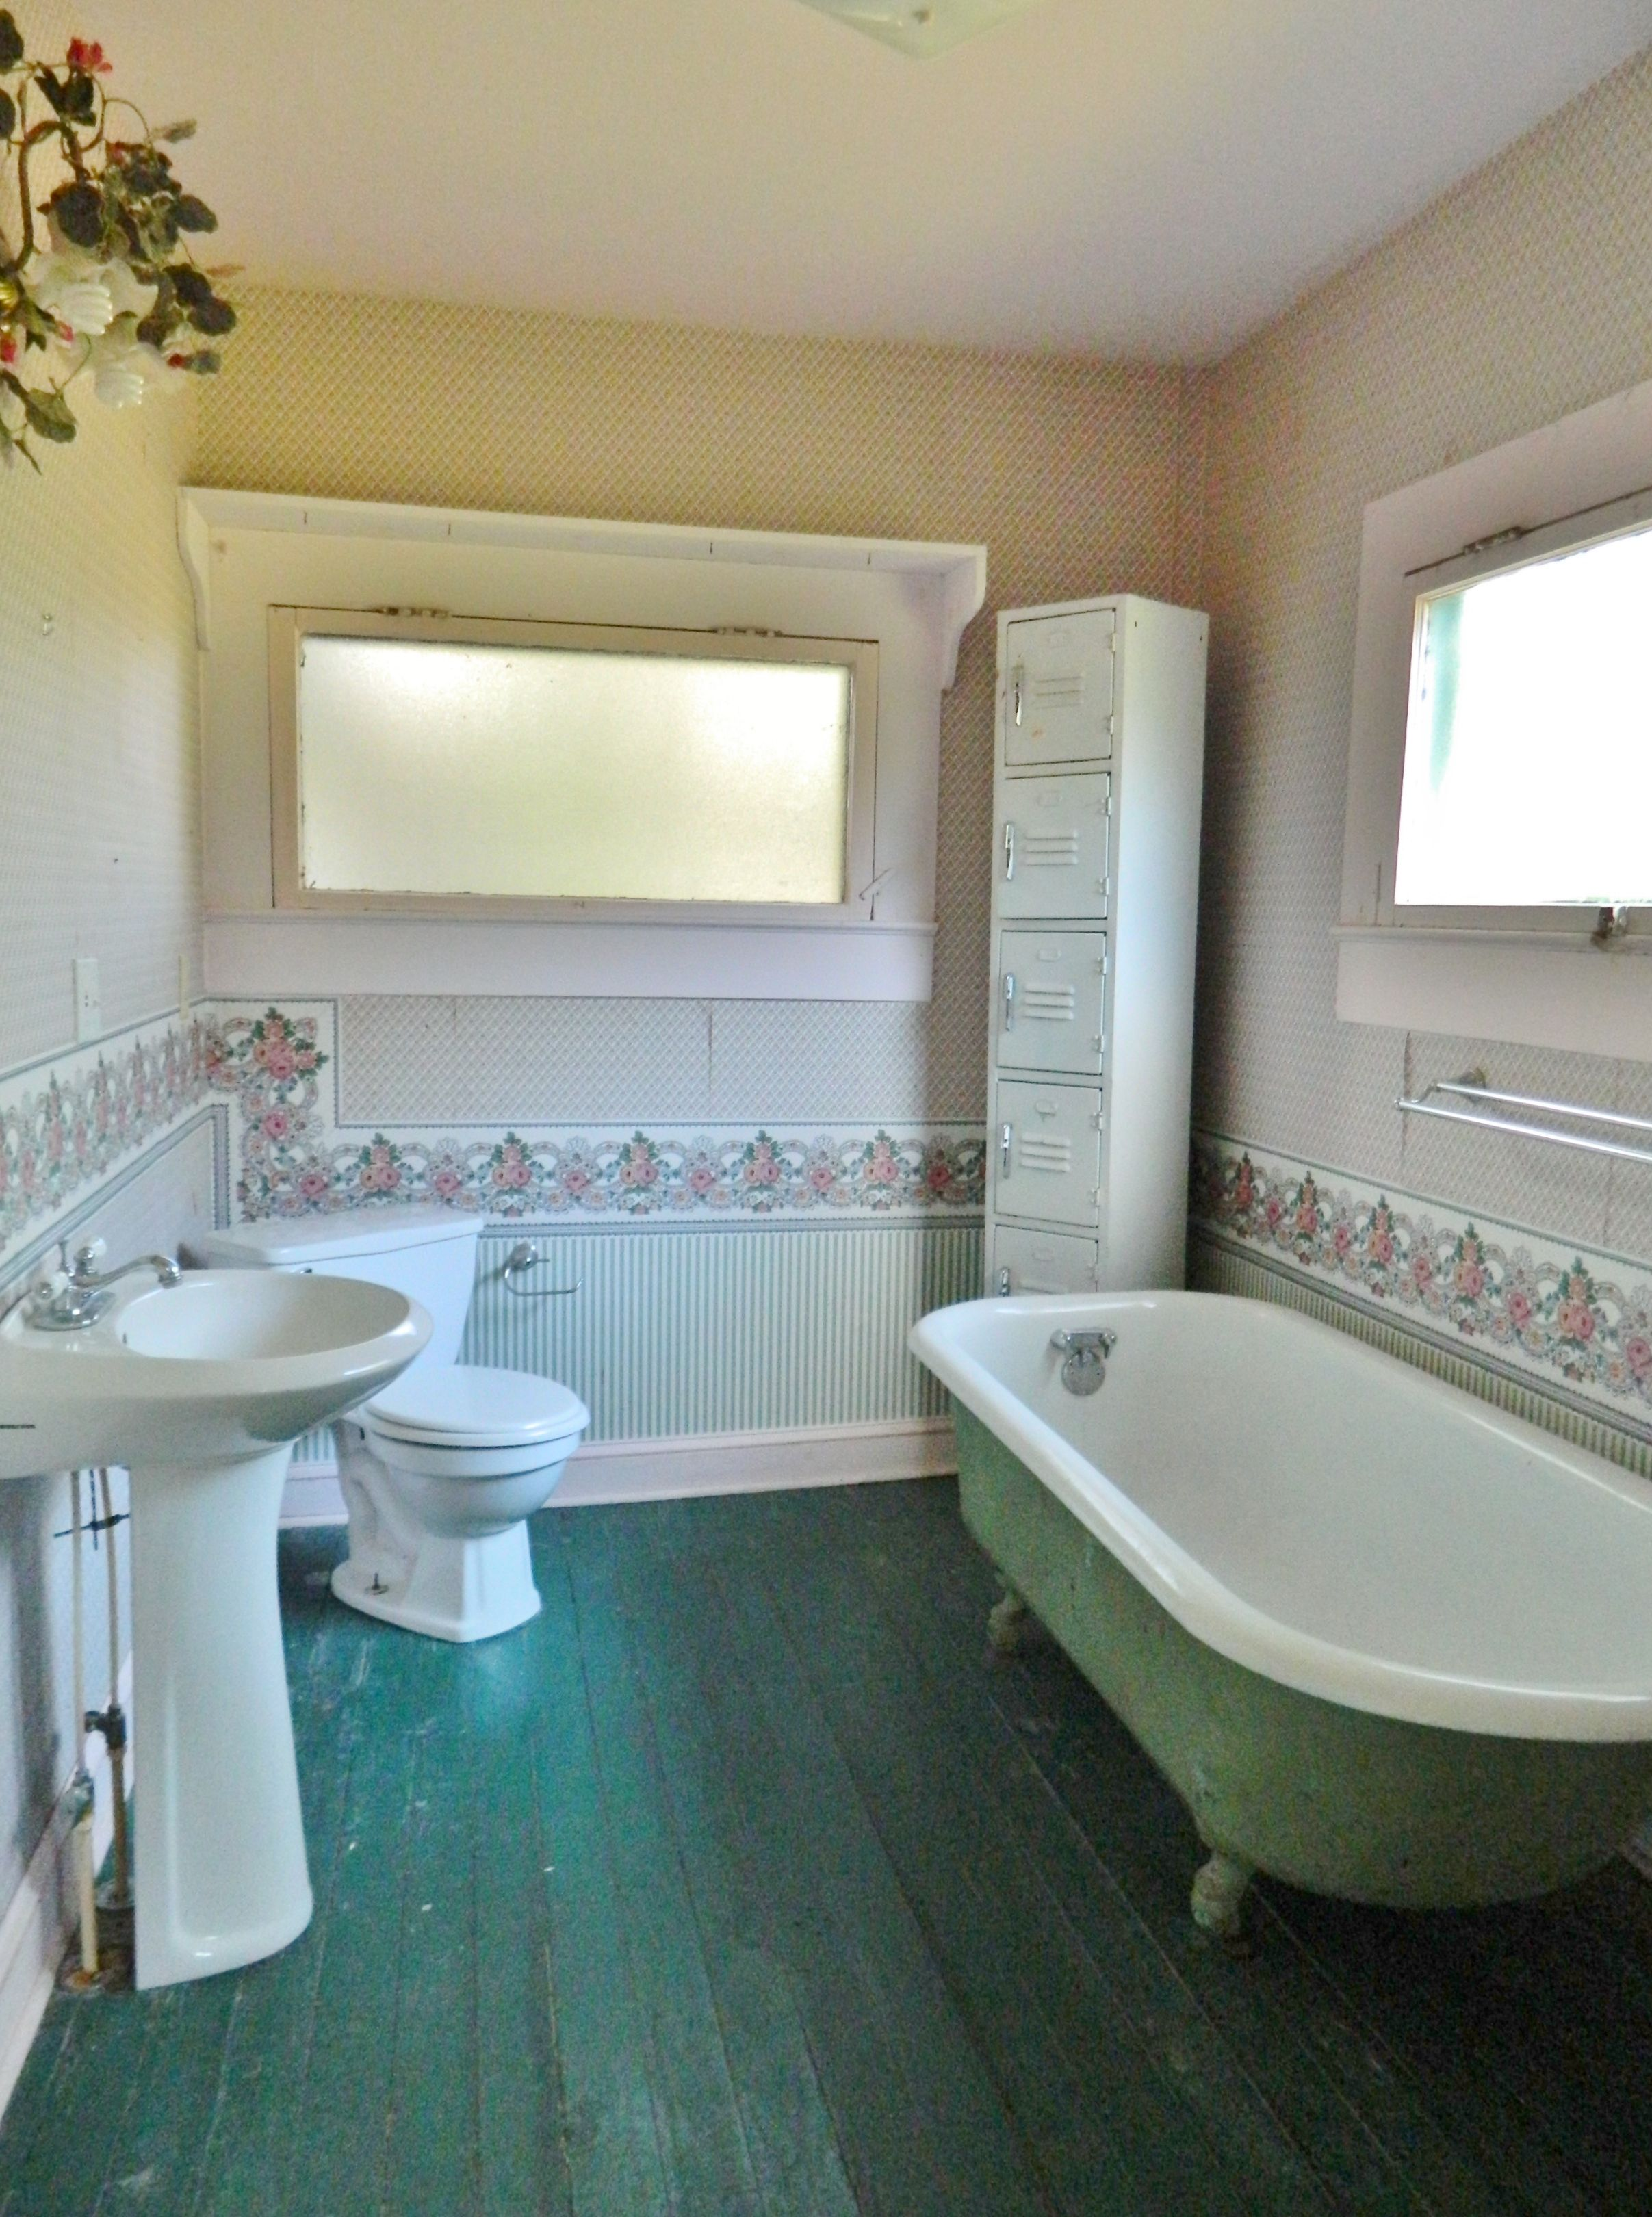 Cute Vintage Bathroom With Clawfoot Tub In This Unique &